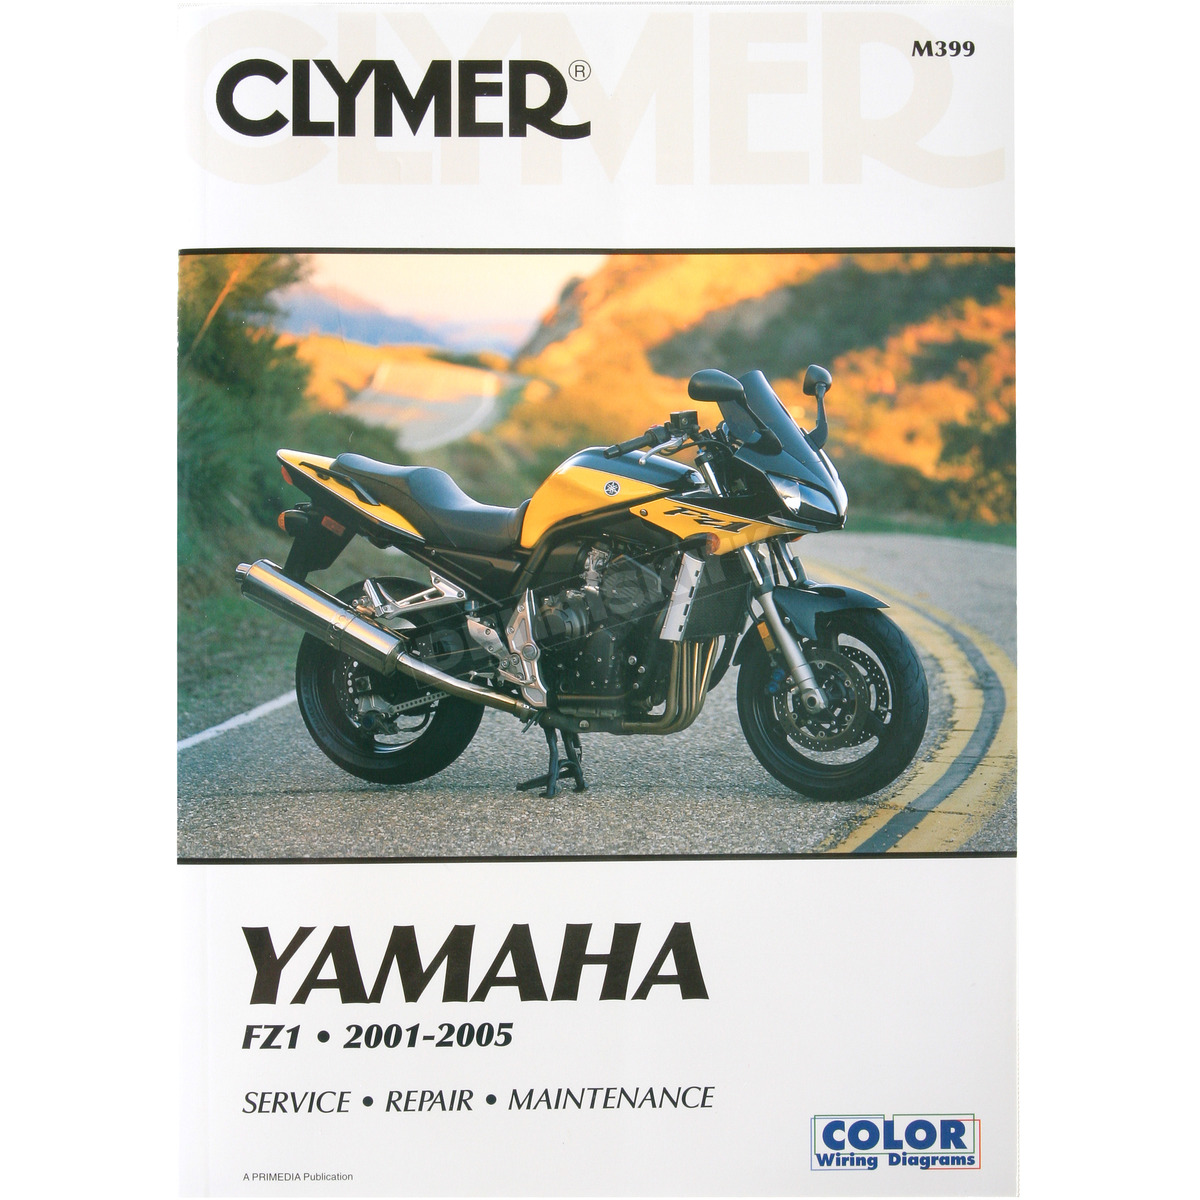 clymer yamaha fz1 repair manual - m399